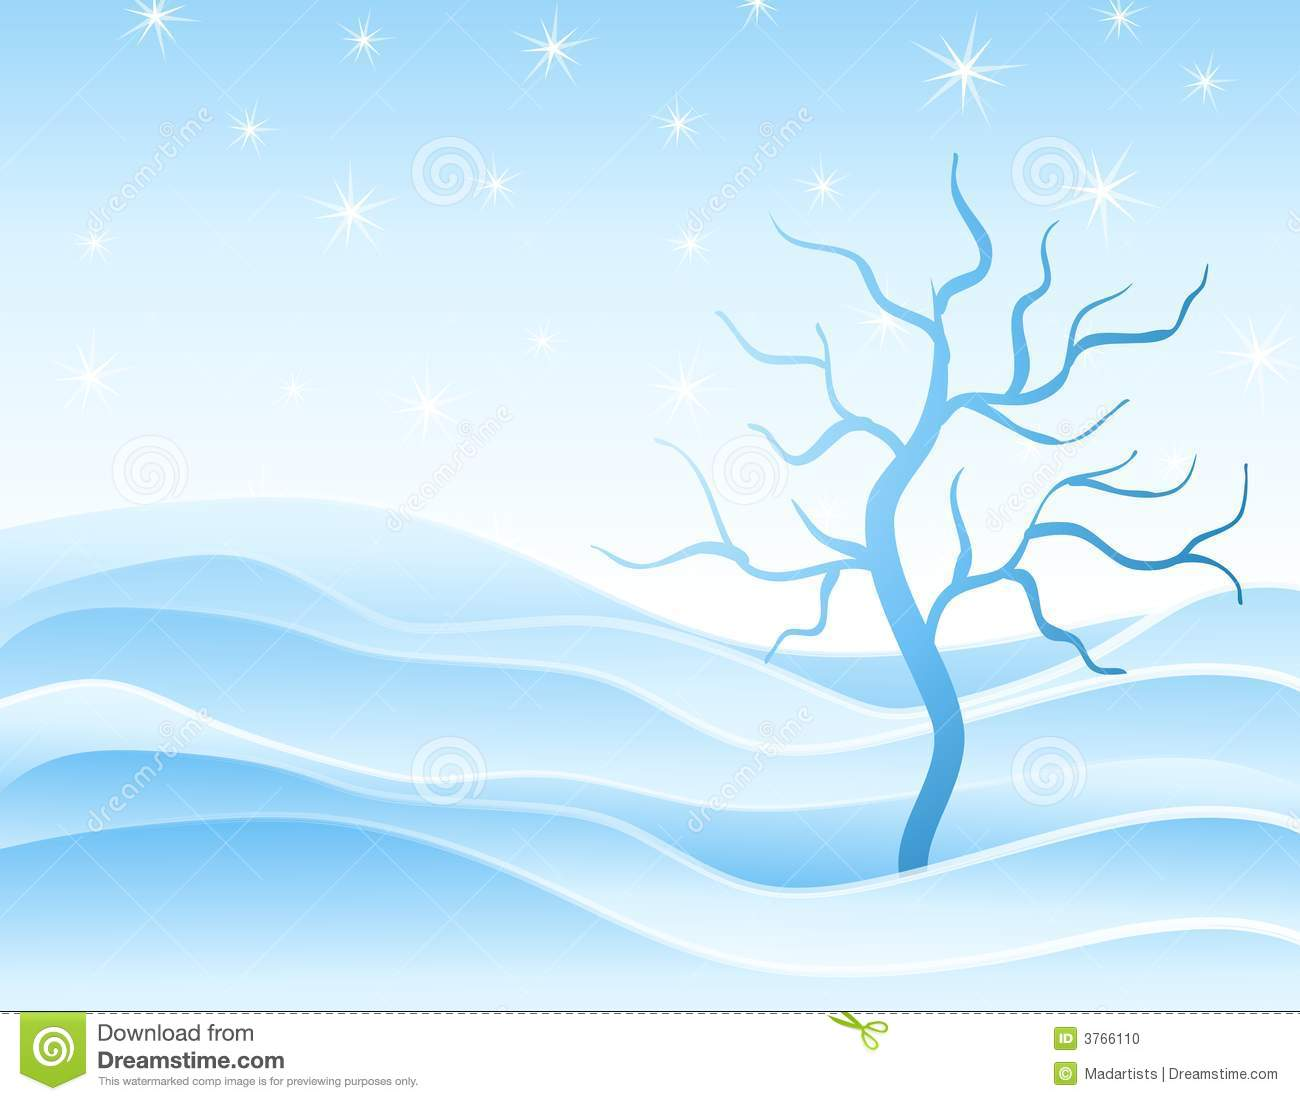 Winter Snowdrifts and Tree in Blue